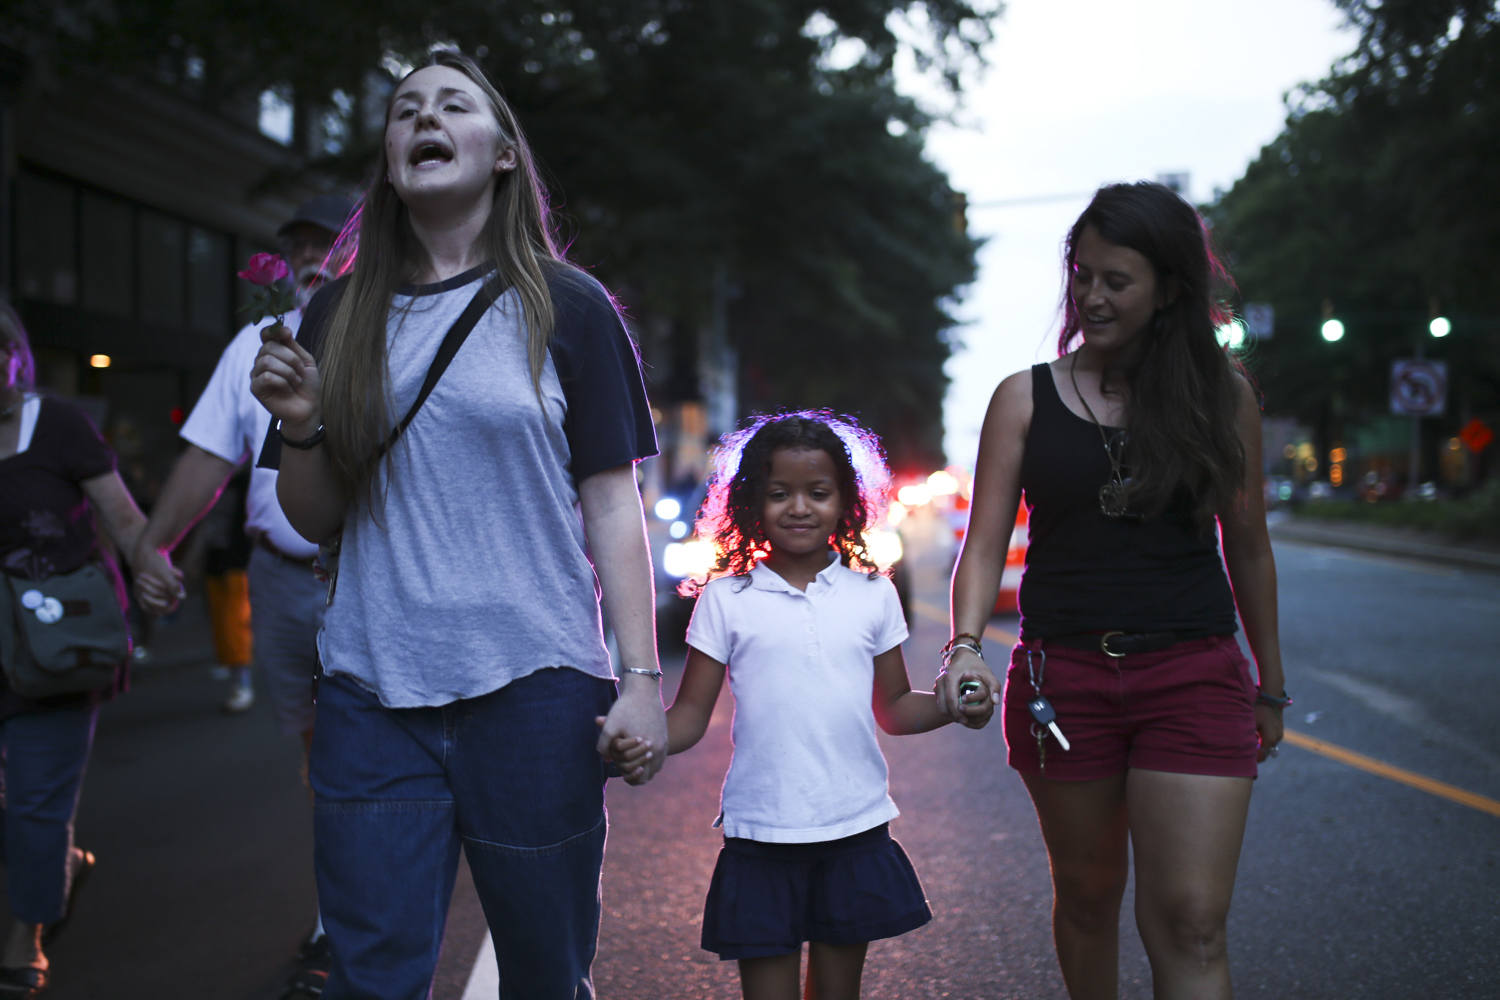 Marchers walk along Broad Street in Richmond during a protest against President Donald Trump's call to rescind the Deferred Action for Childhood Arrivals program in Richmond on Tuesday, Sept. 5, 2017. [Scott P. Yates/progress-index.com]